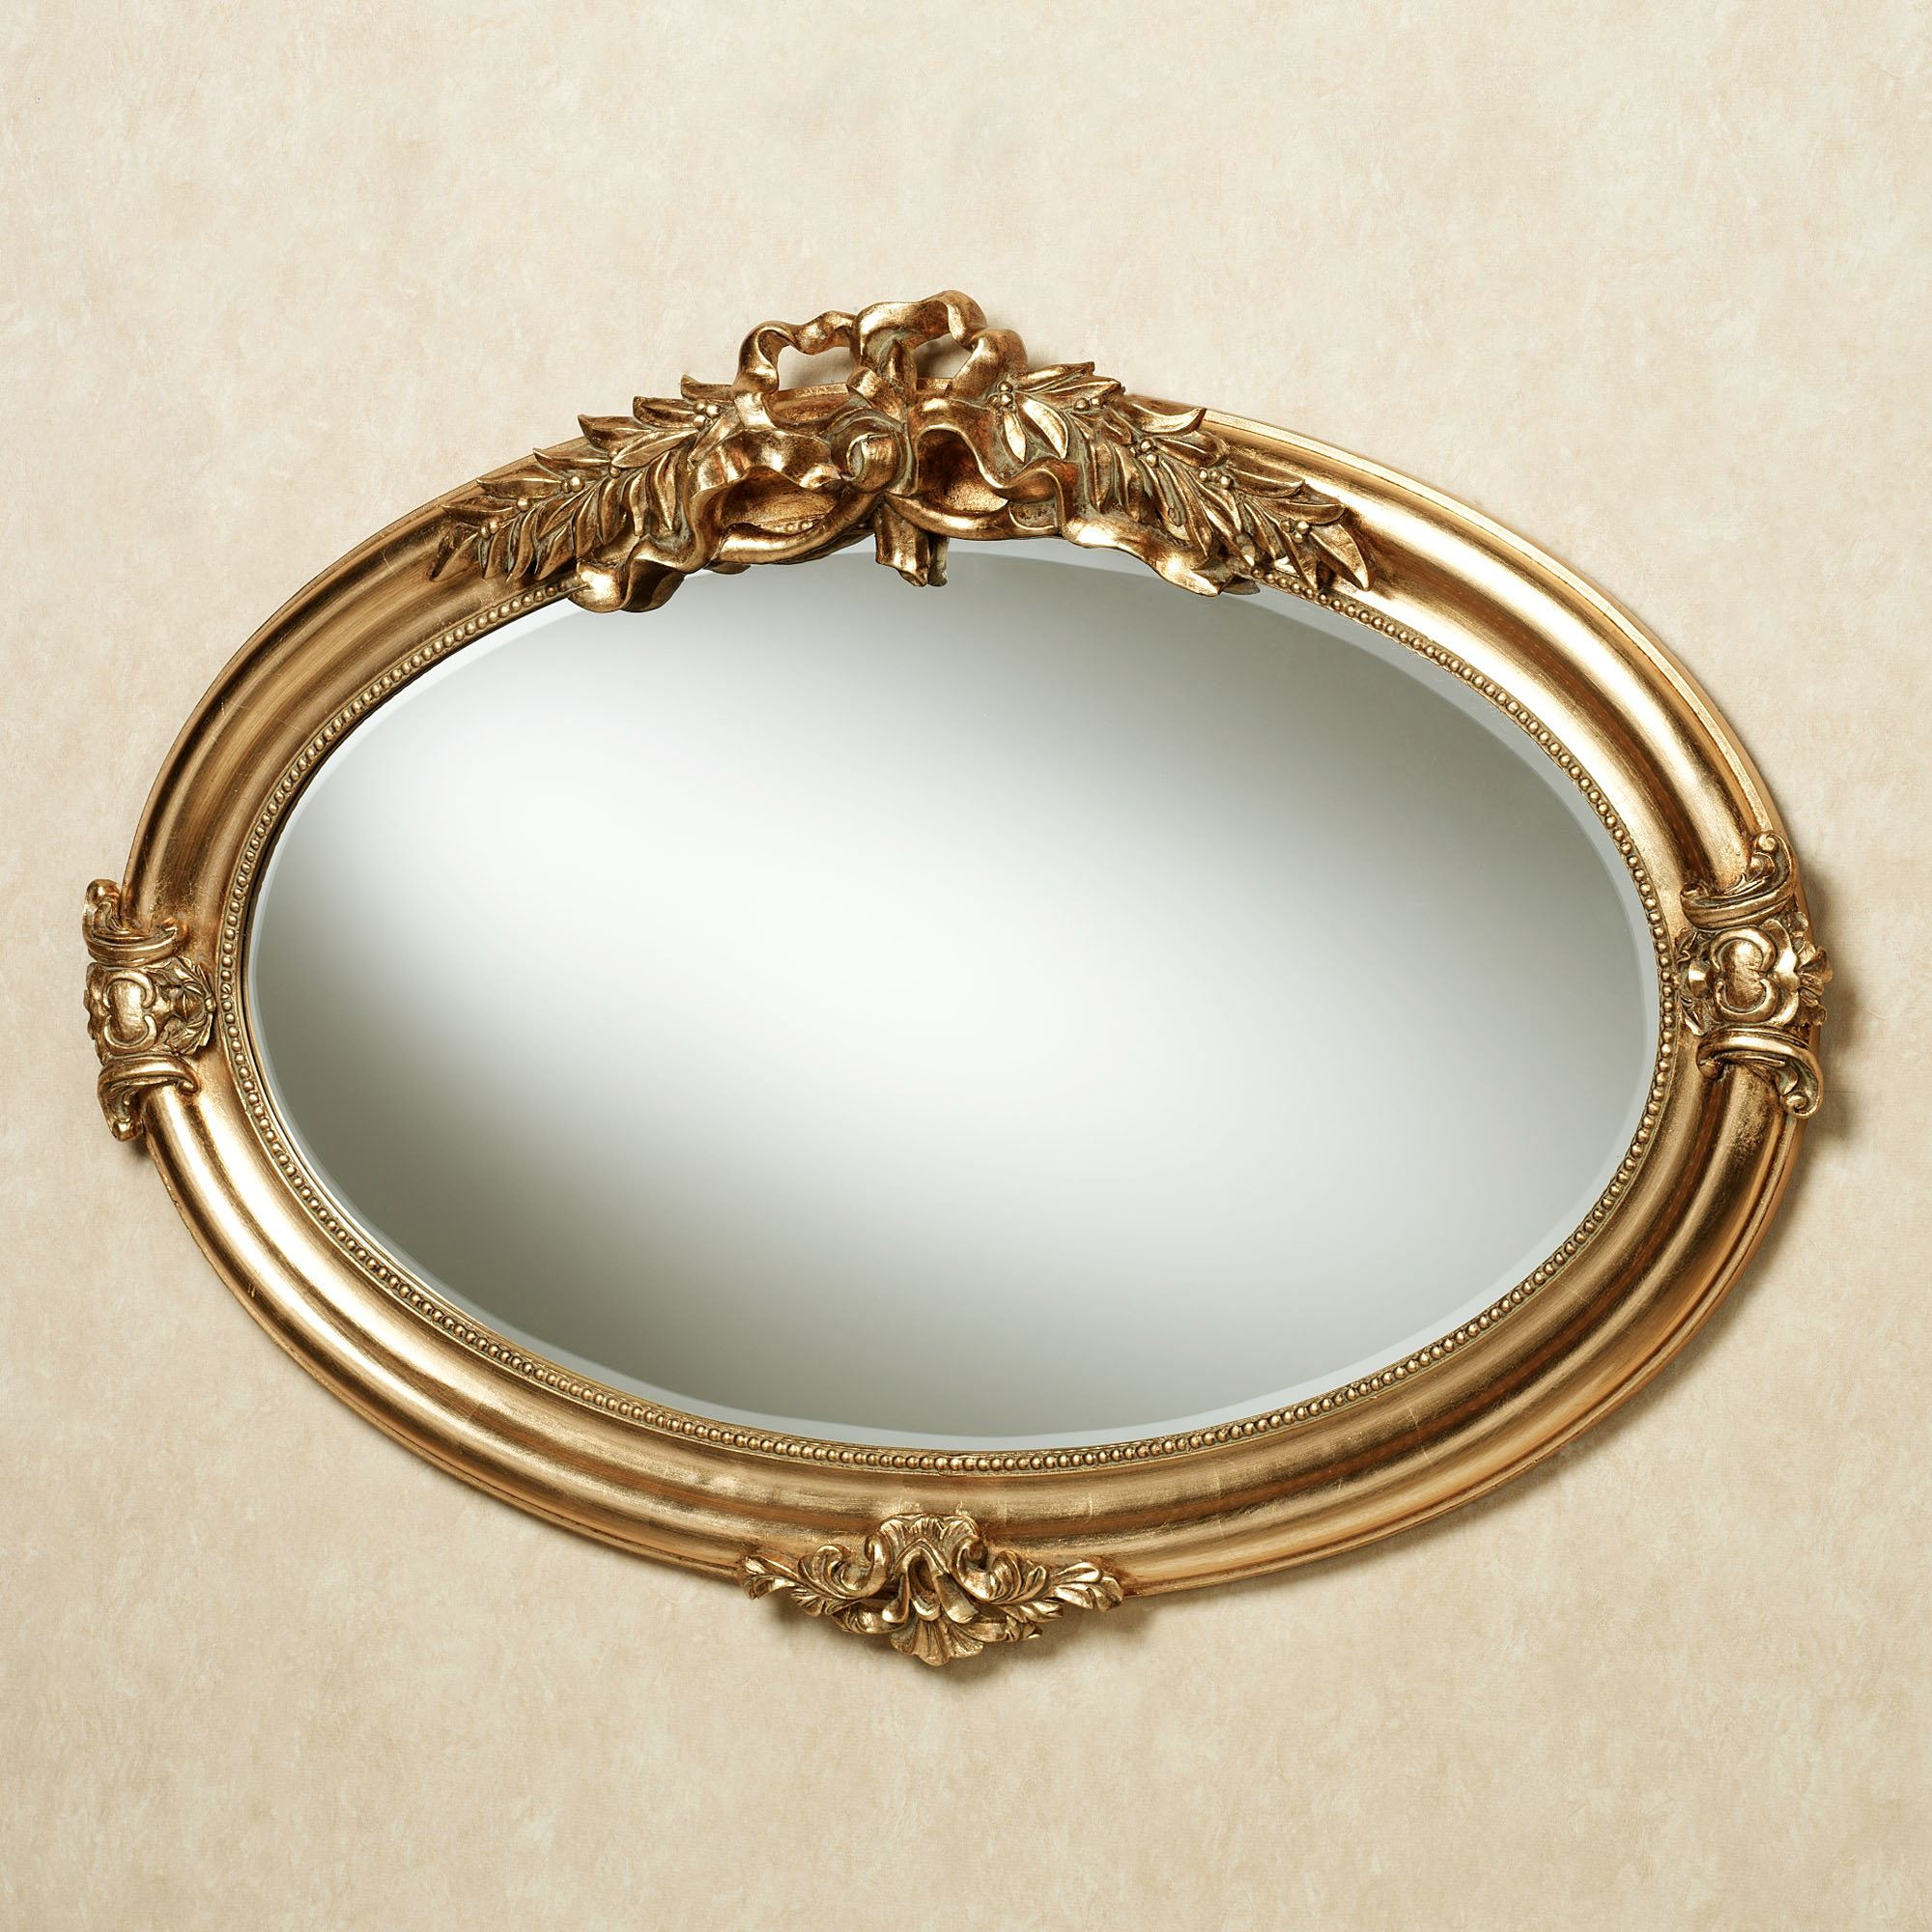 Marsciano horizontal oval wall mirror for Fancy oval mirror